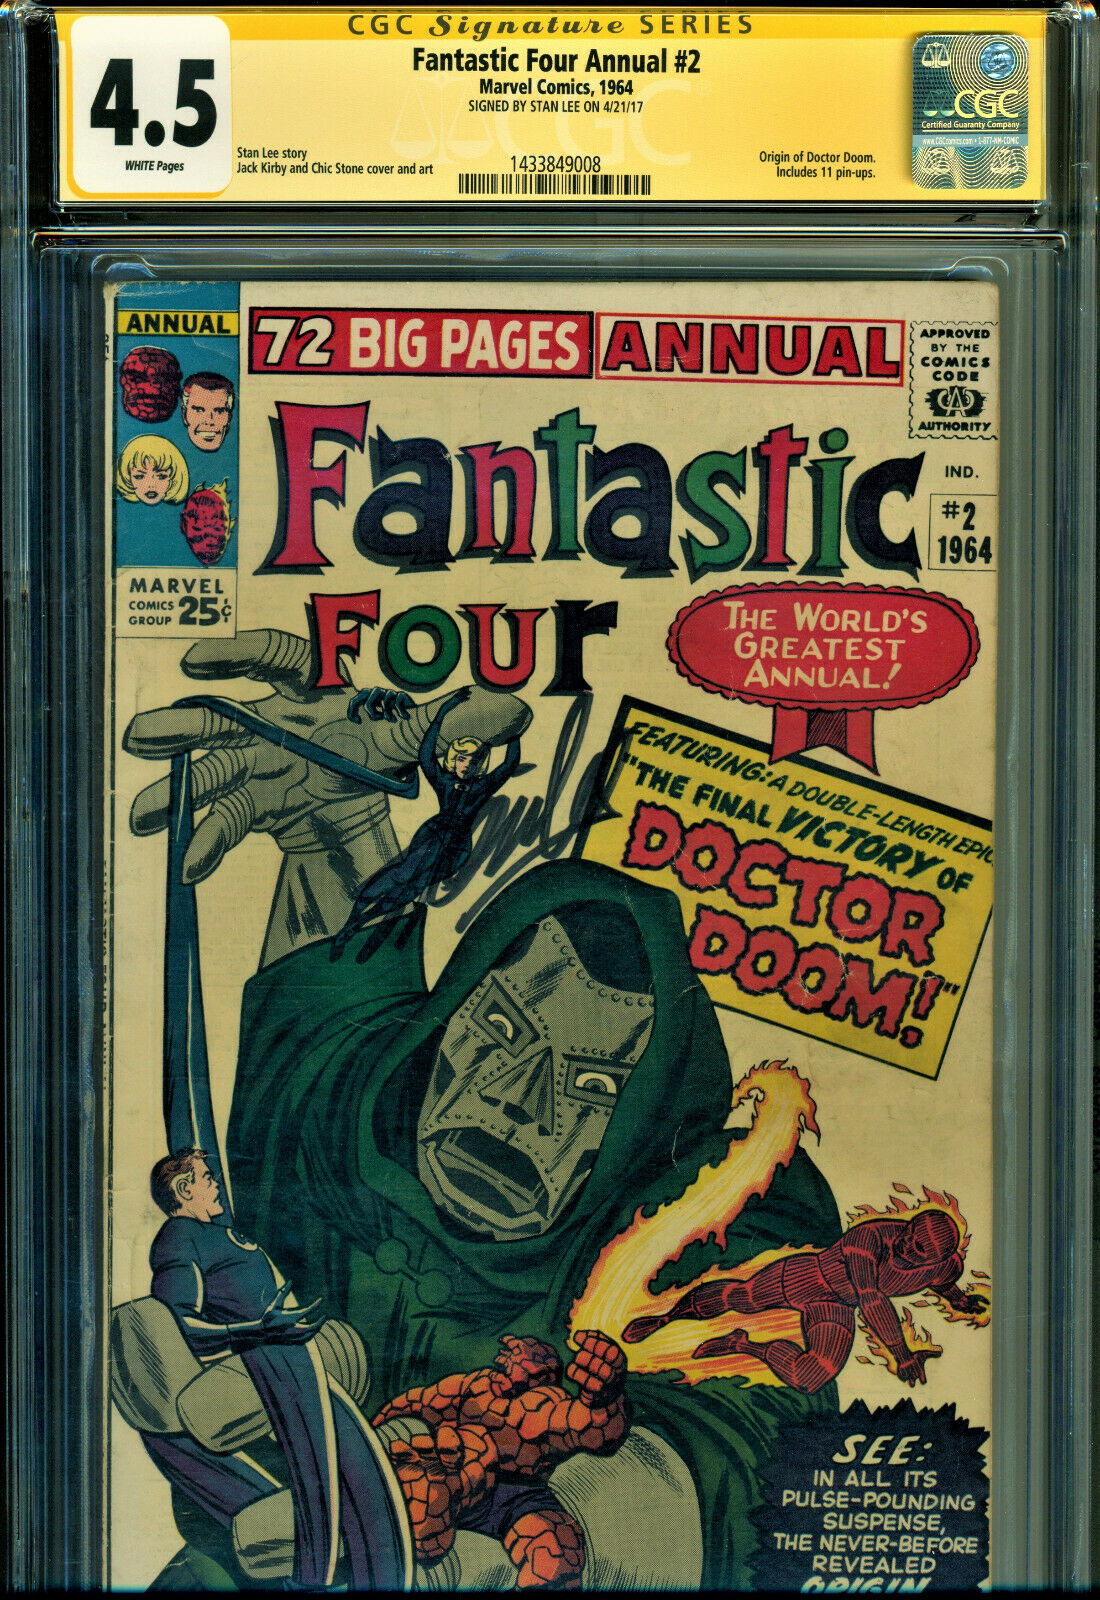 FANTASTIC FOUR ANNUAL 2 SS CGC 45 WPGS SIGNED BY STAN LEE ORIGIN OF DR DOOM